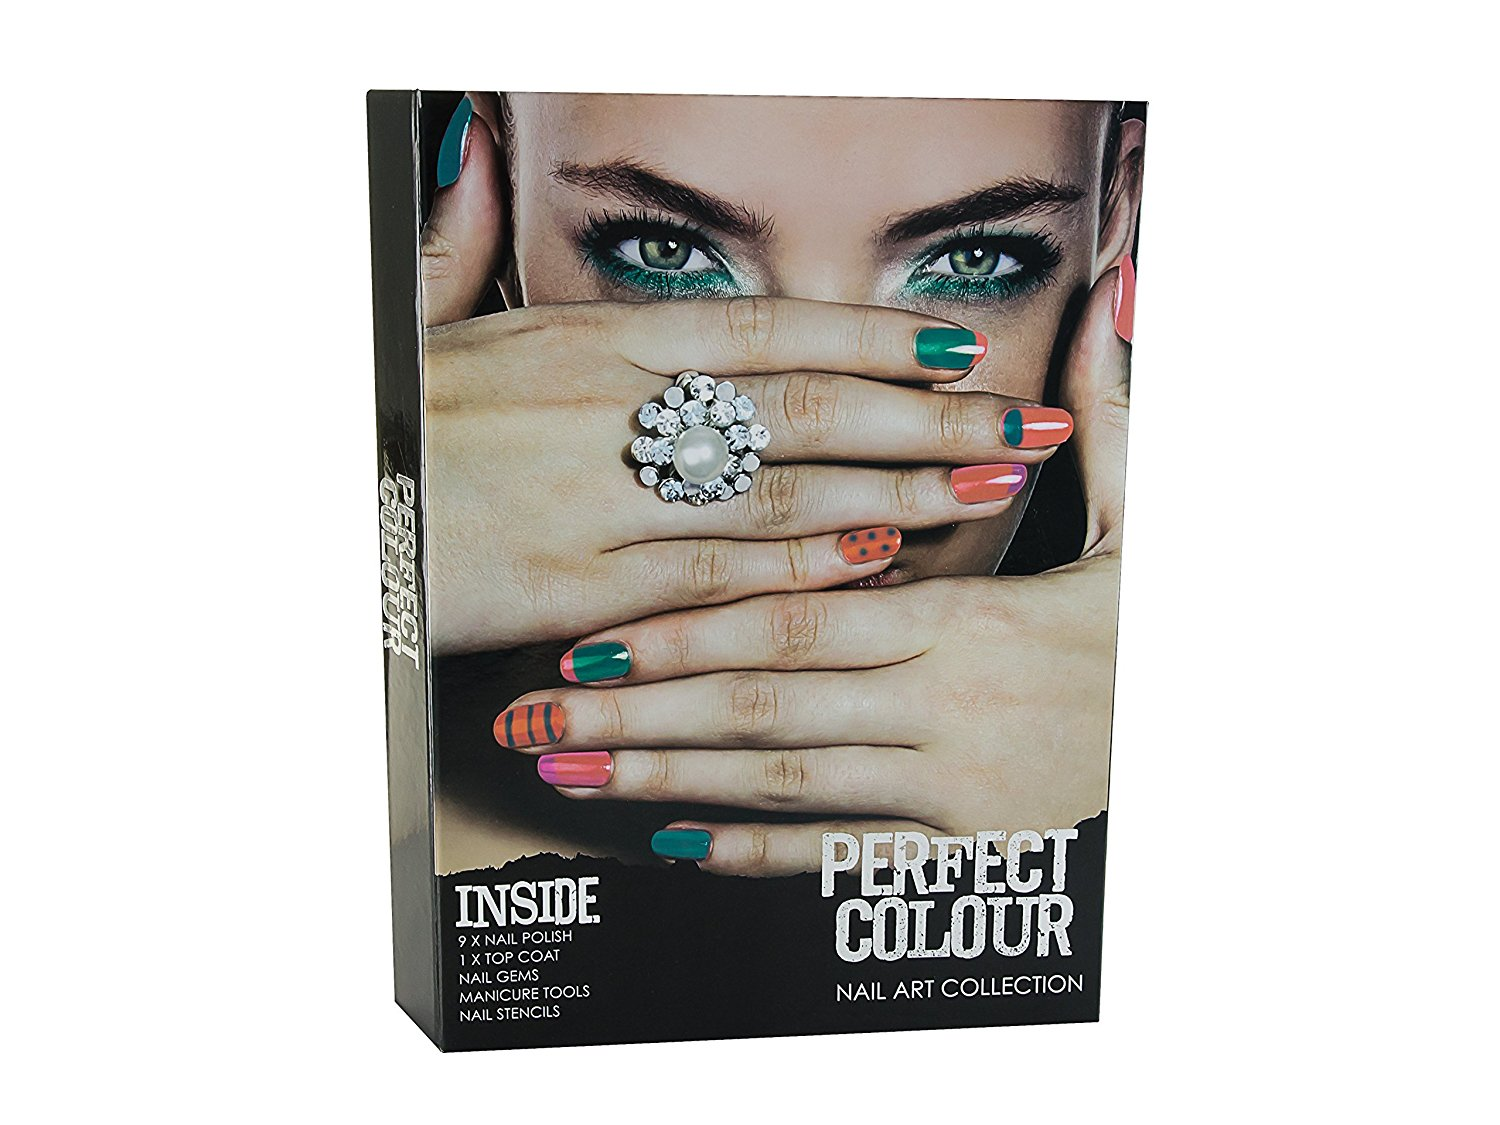 Jigsaw Perfect Colour Nail Art Collection Gift Set 23 Pieces